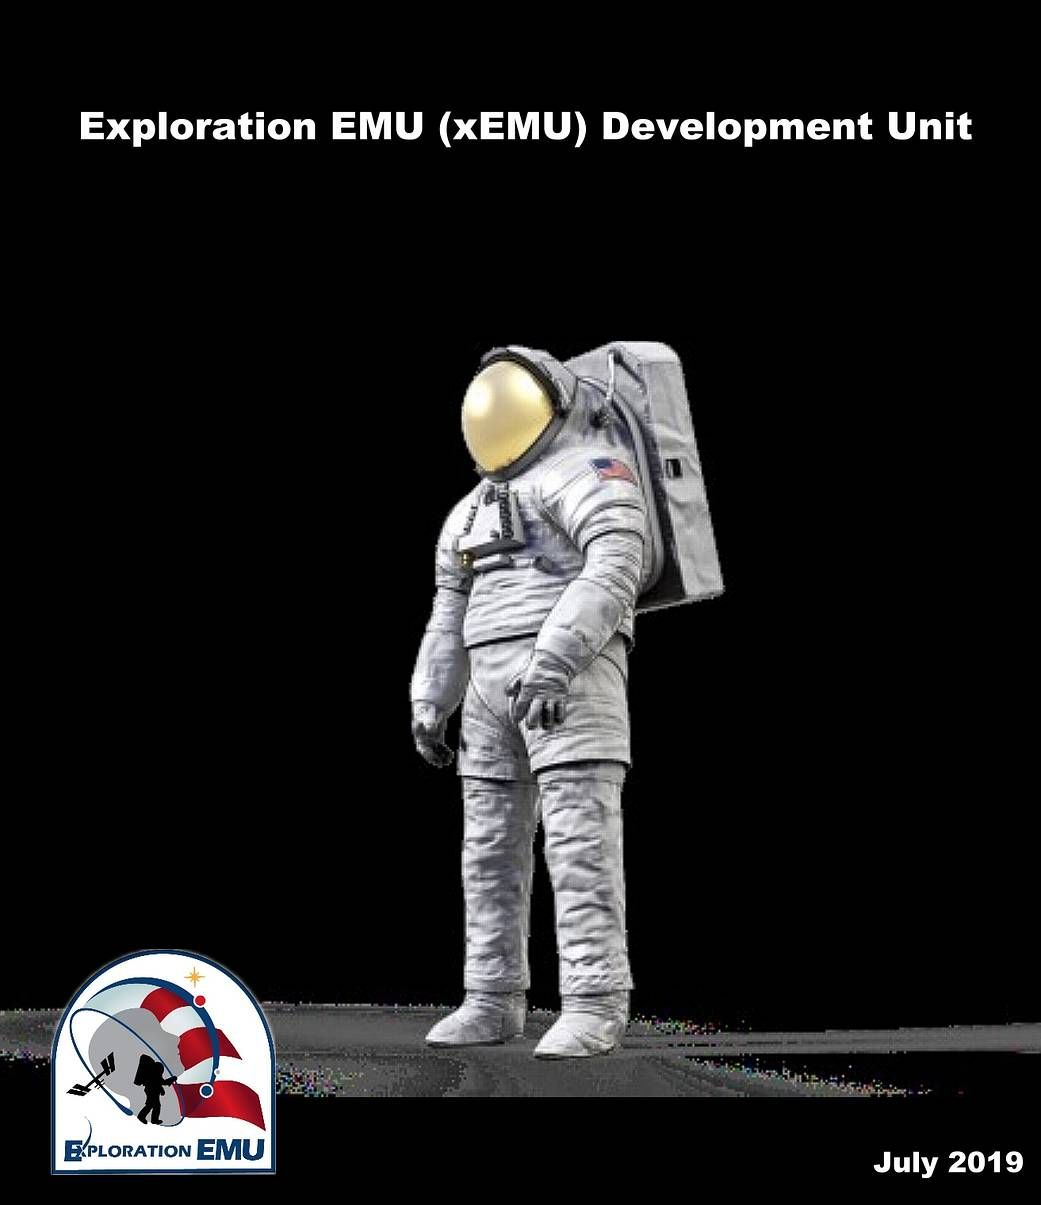 Nasa Wants To Test New Moon Spacesuits On The Space